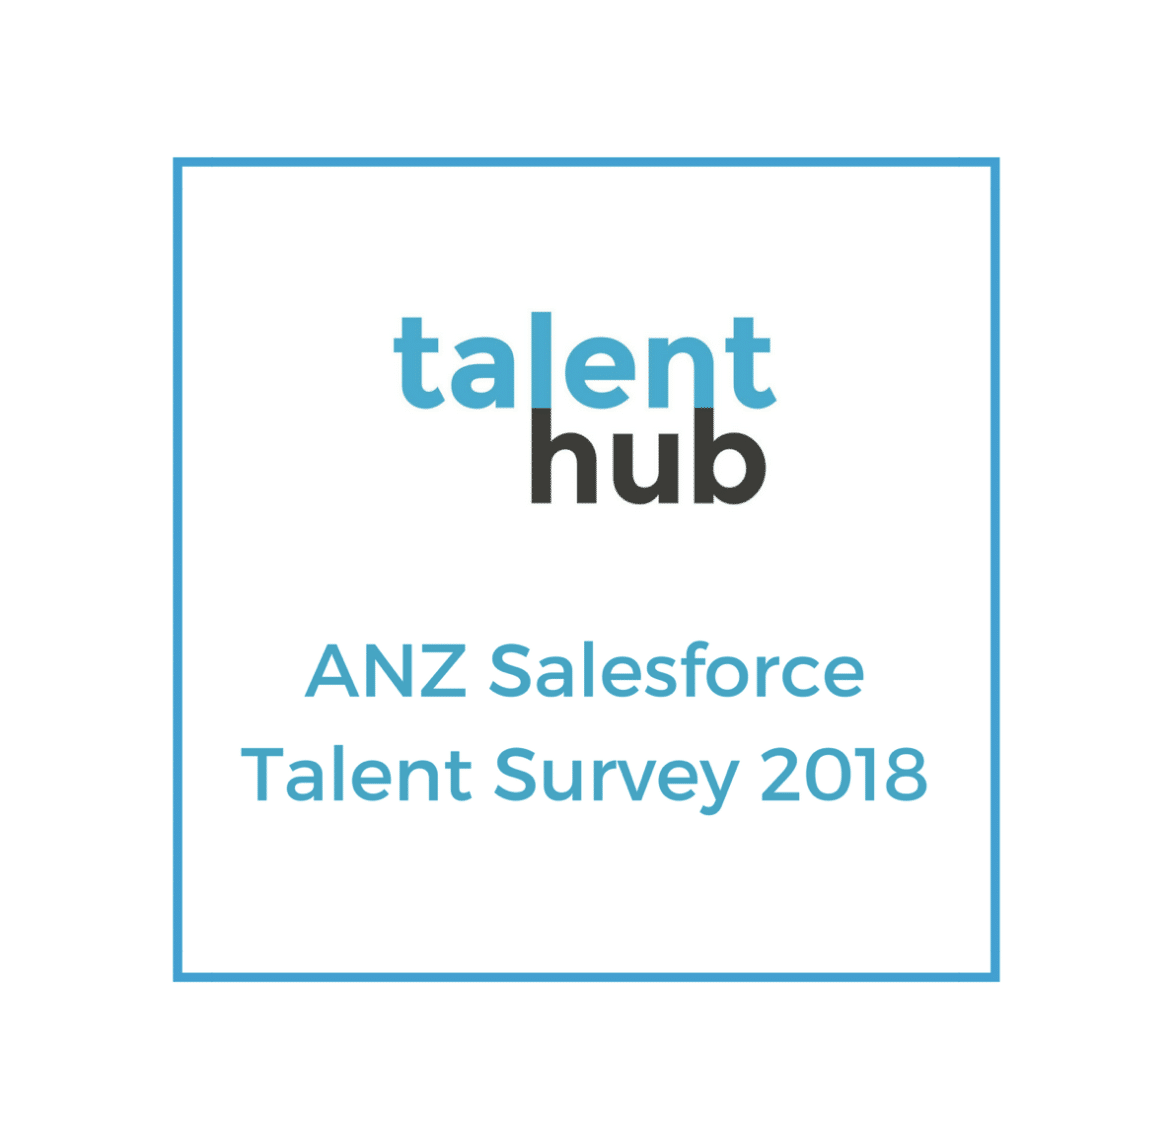 ANZ Salesforce Talent Survey 2018